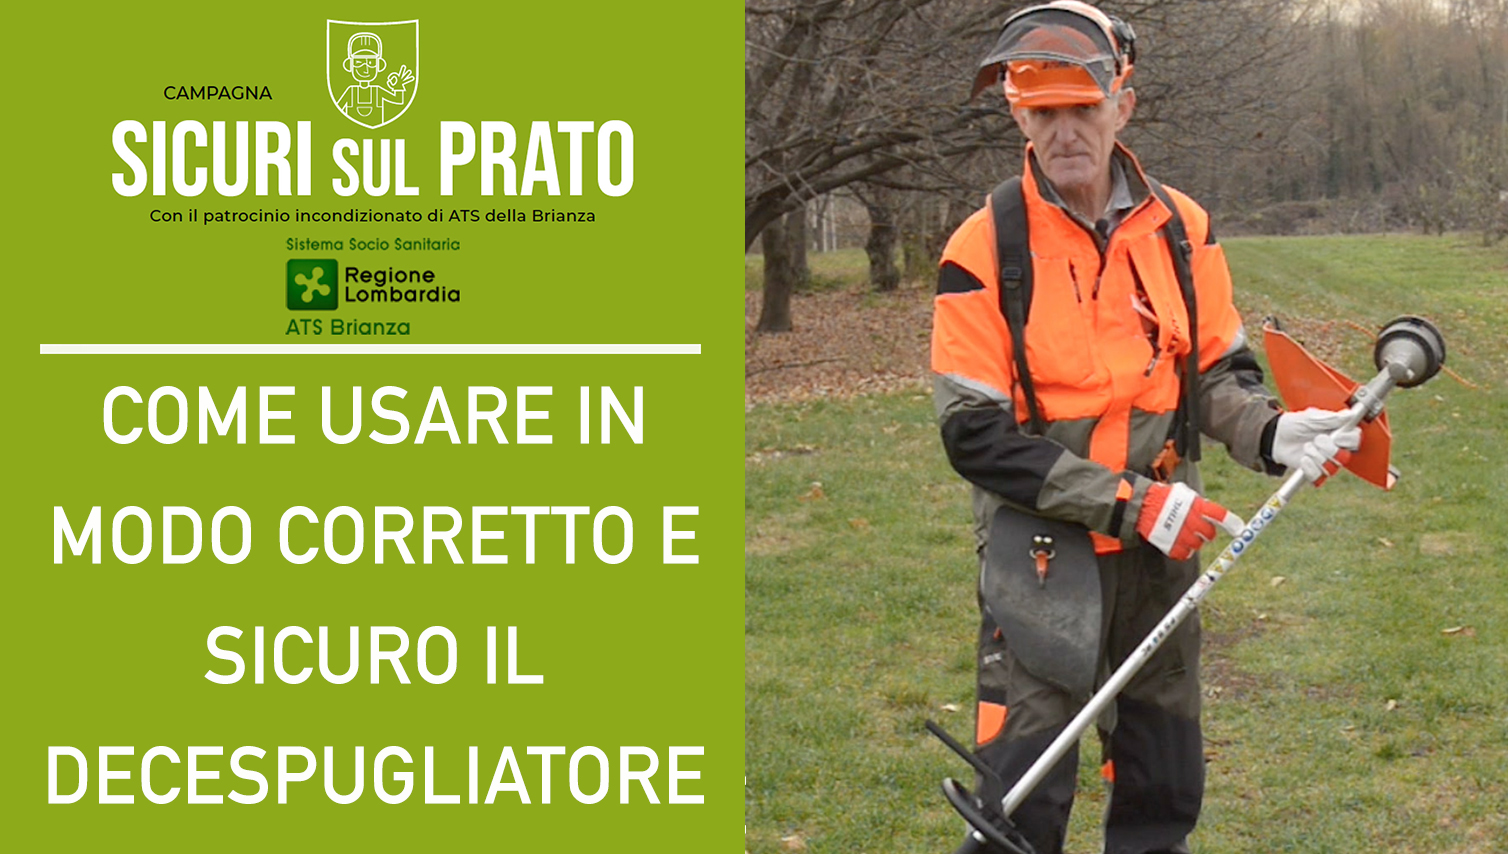 Regulations, PPE and advice for the use of the brush cutter